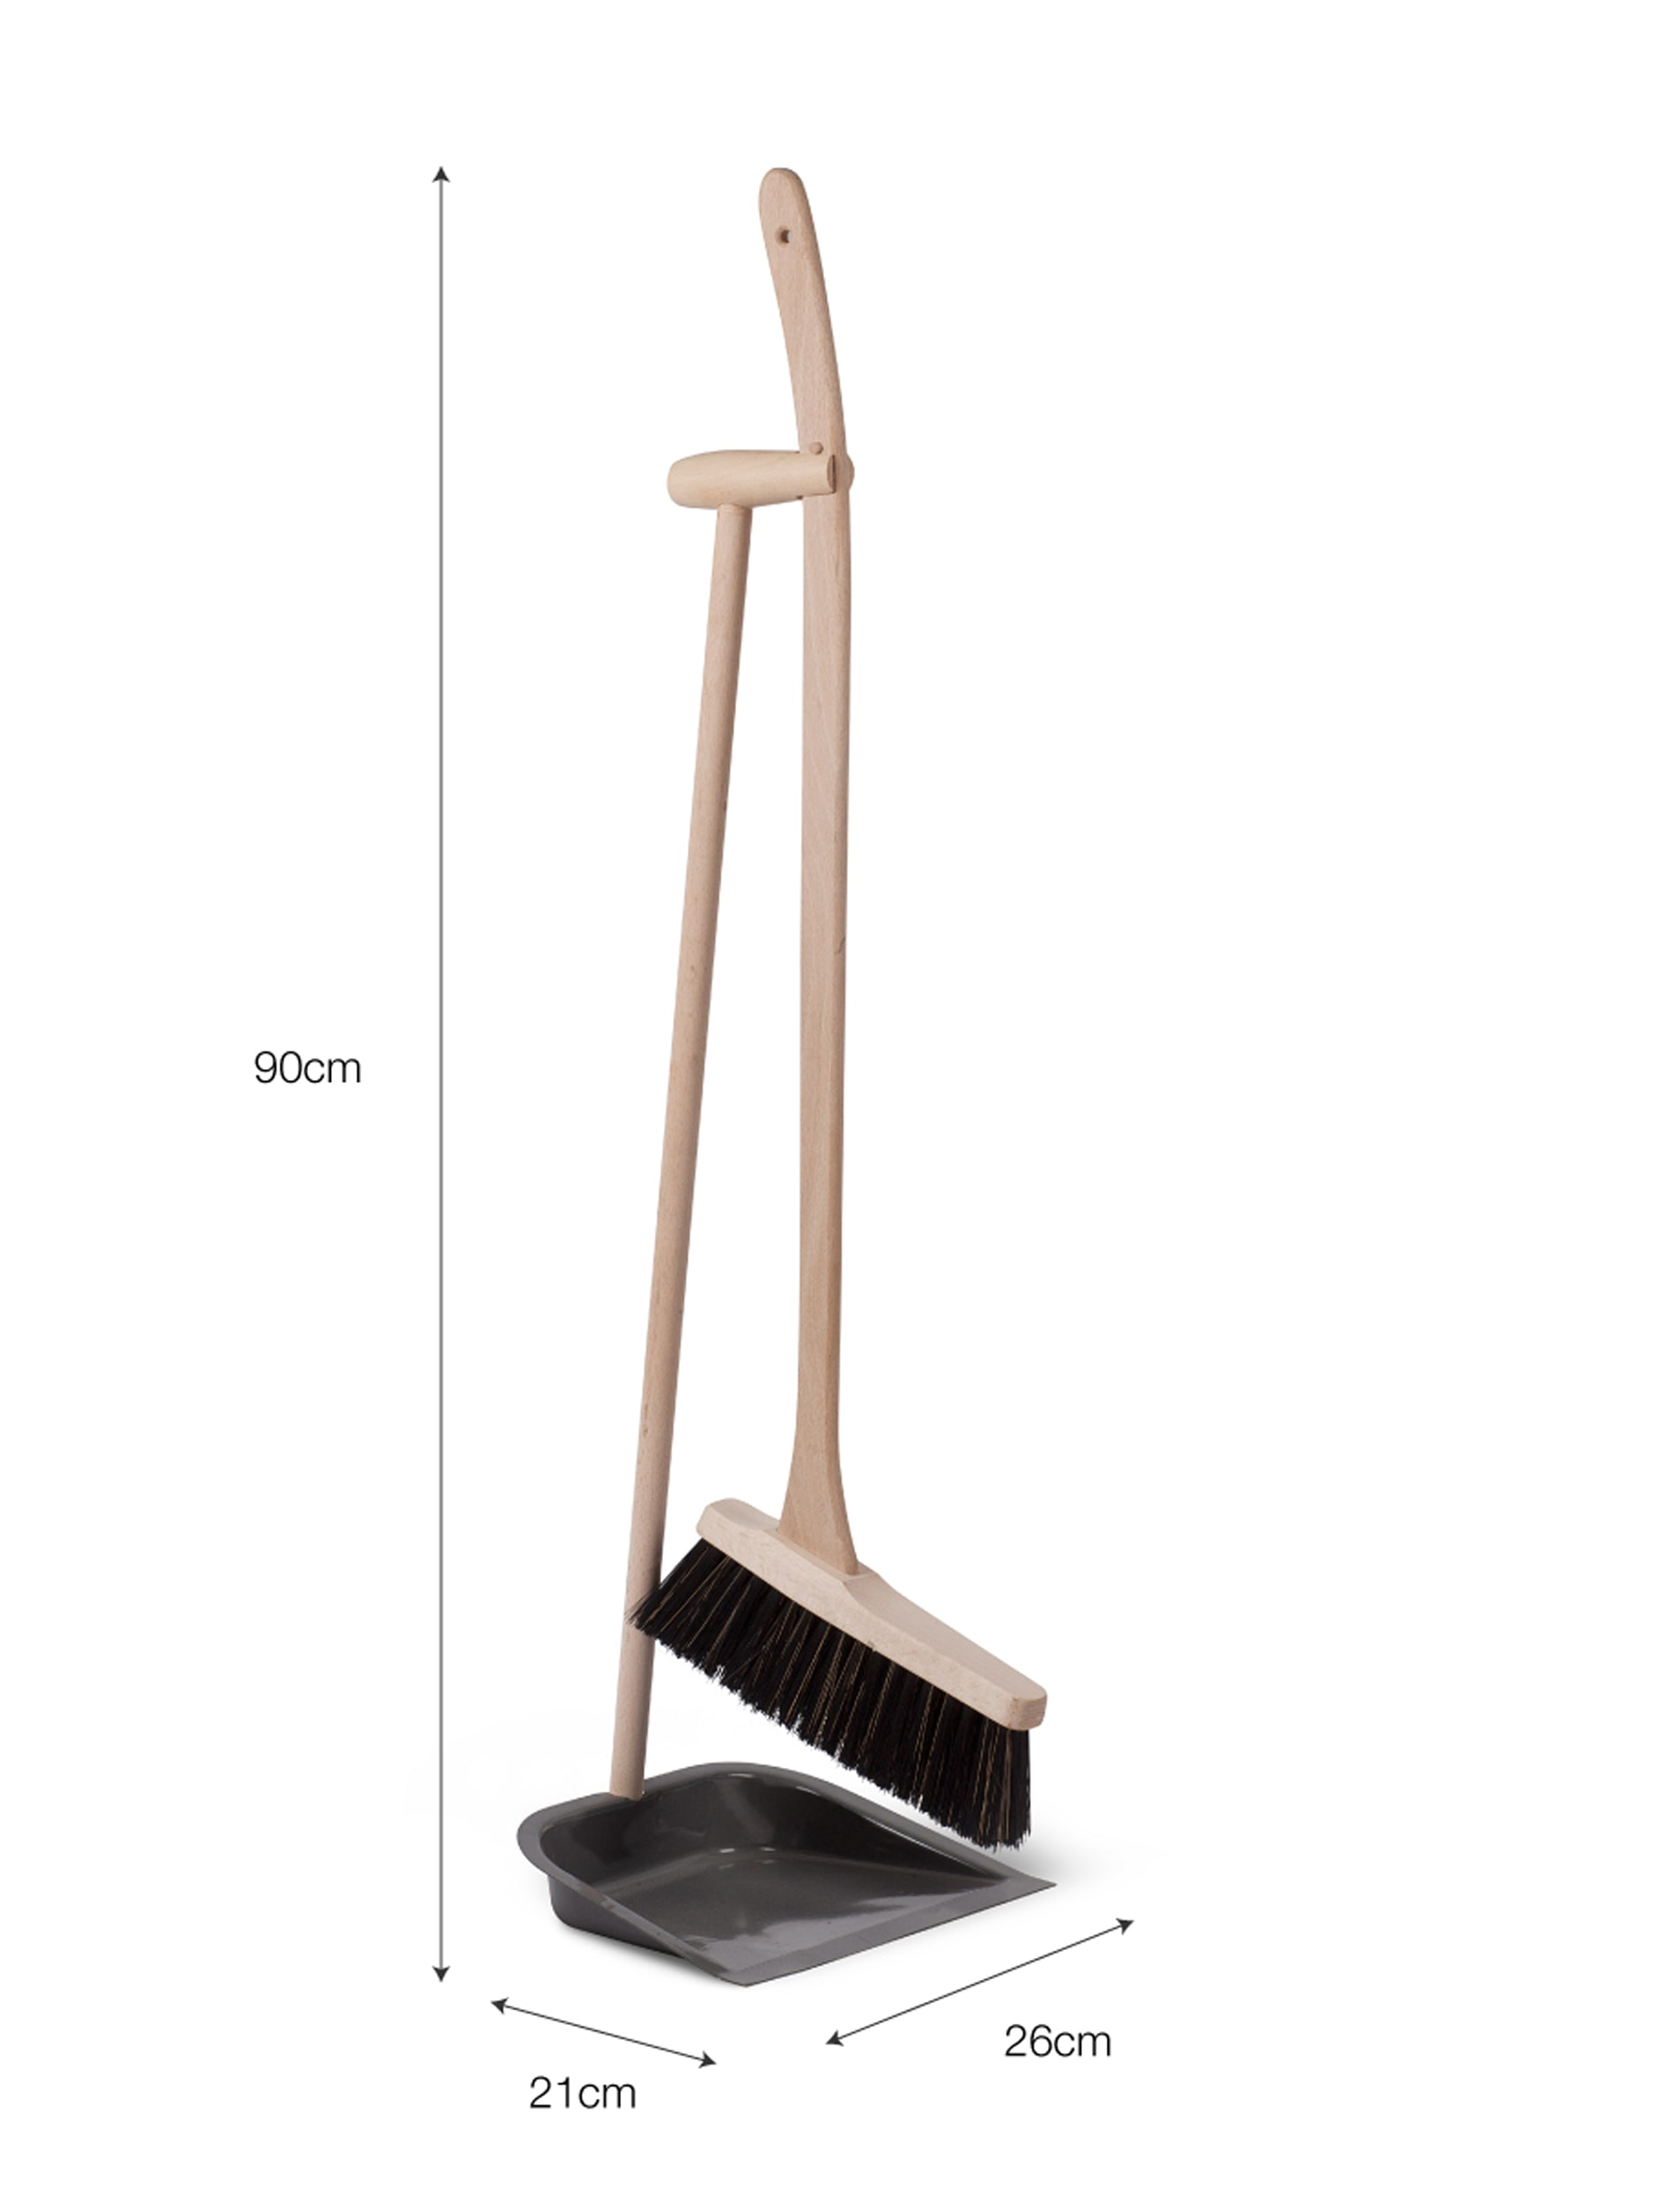 Wooden Long Handle Dustpan and Brush | Garden Trading